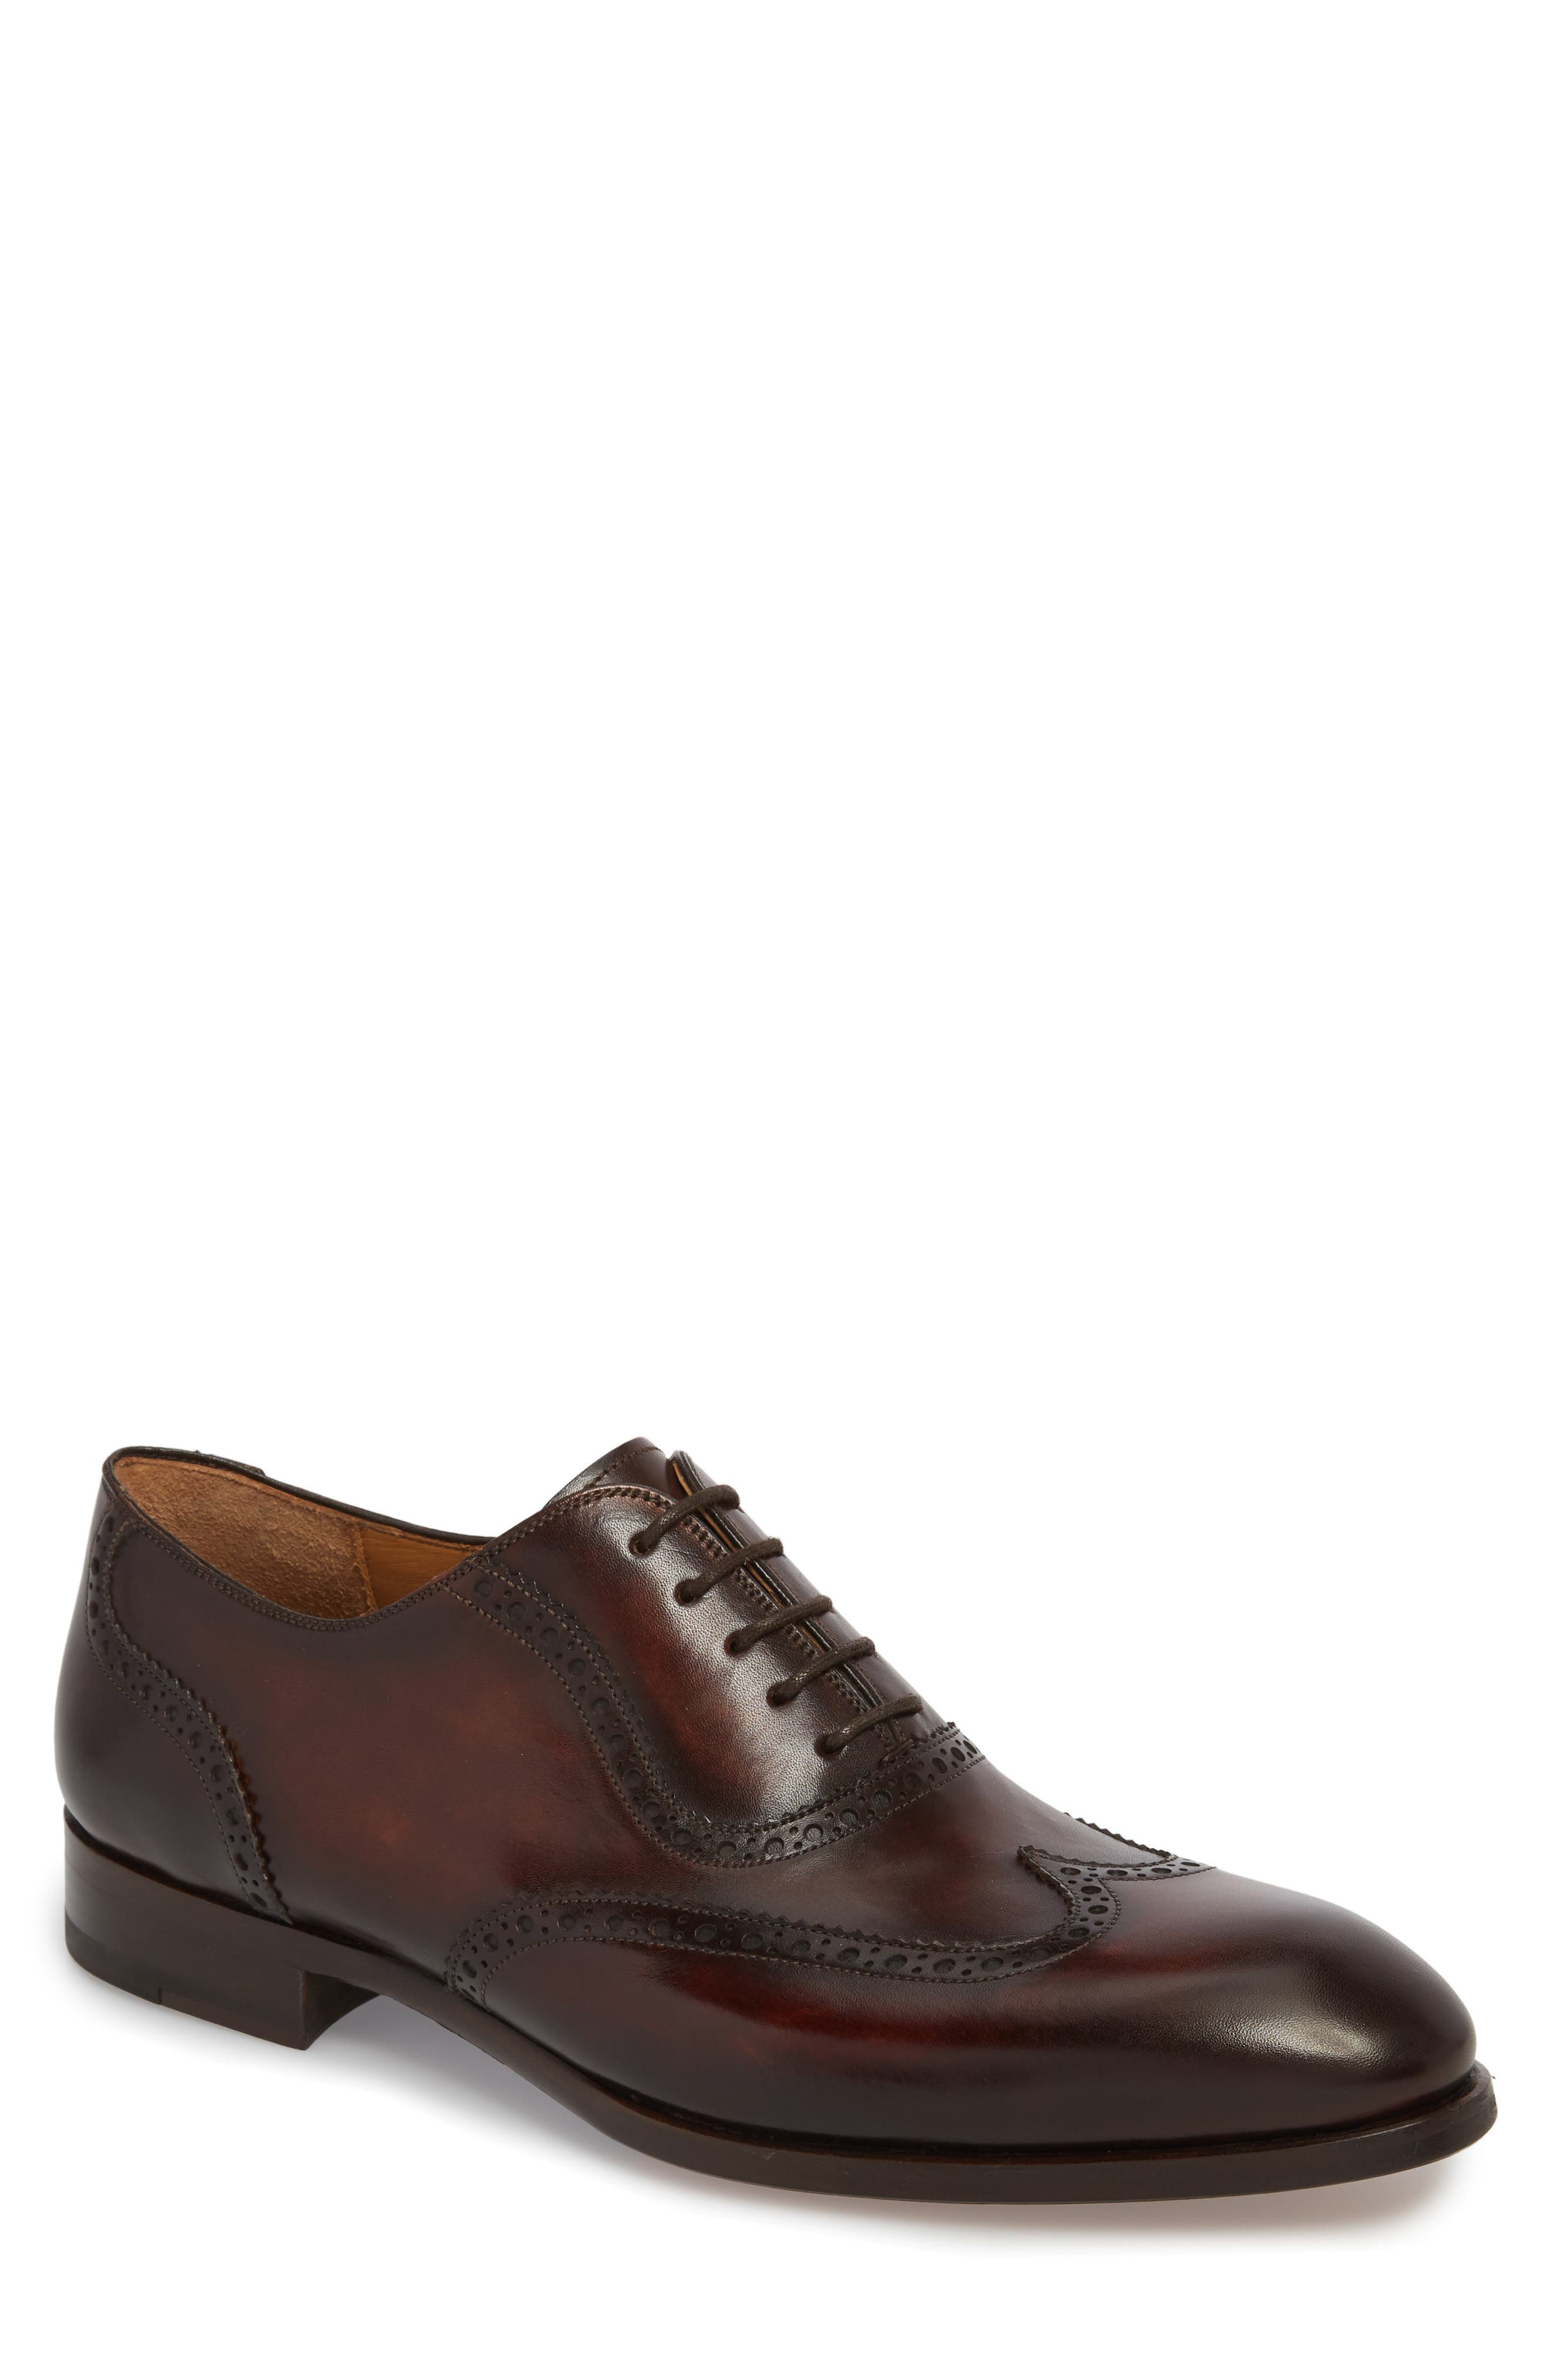 Dana Wingtip Oxford,                             Main thumbnail 1, color,                             Mid-Brown Leather